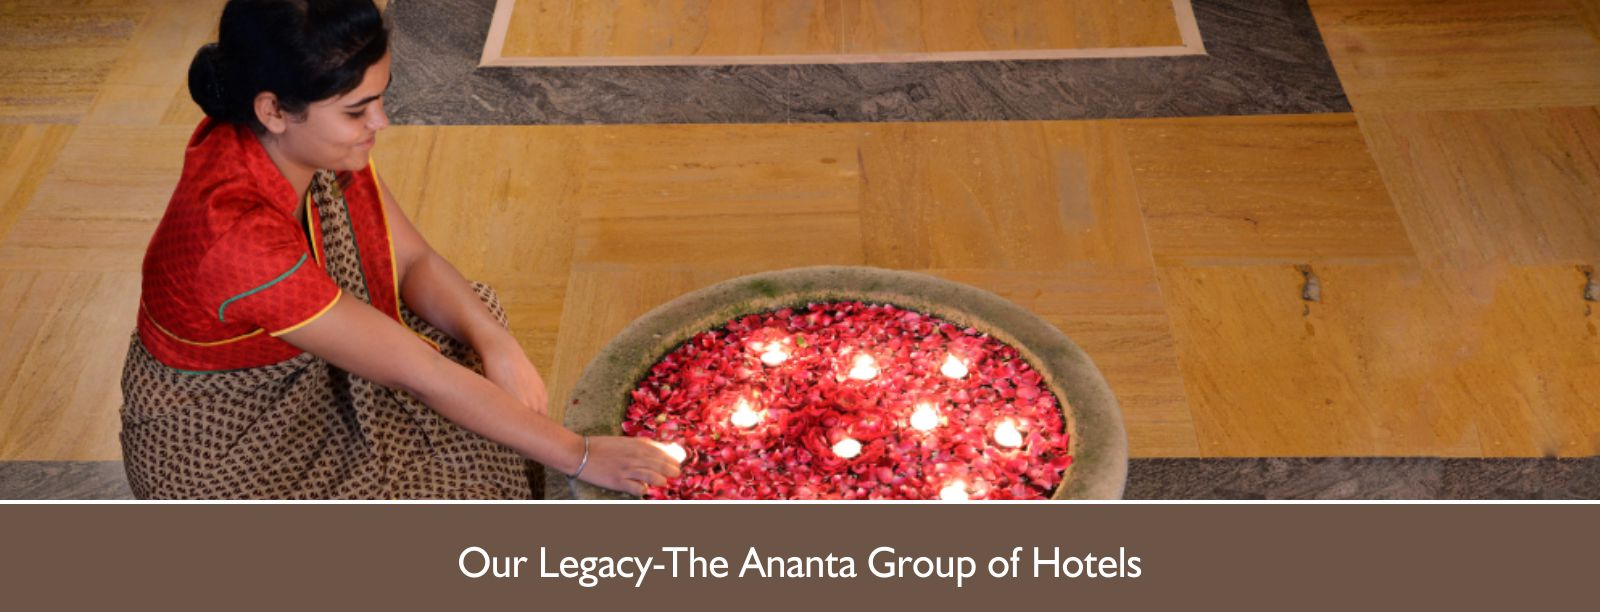 Our Legacy-The Ananta Group of Hotels